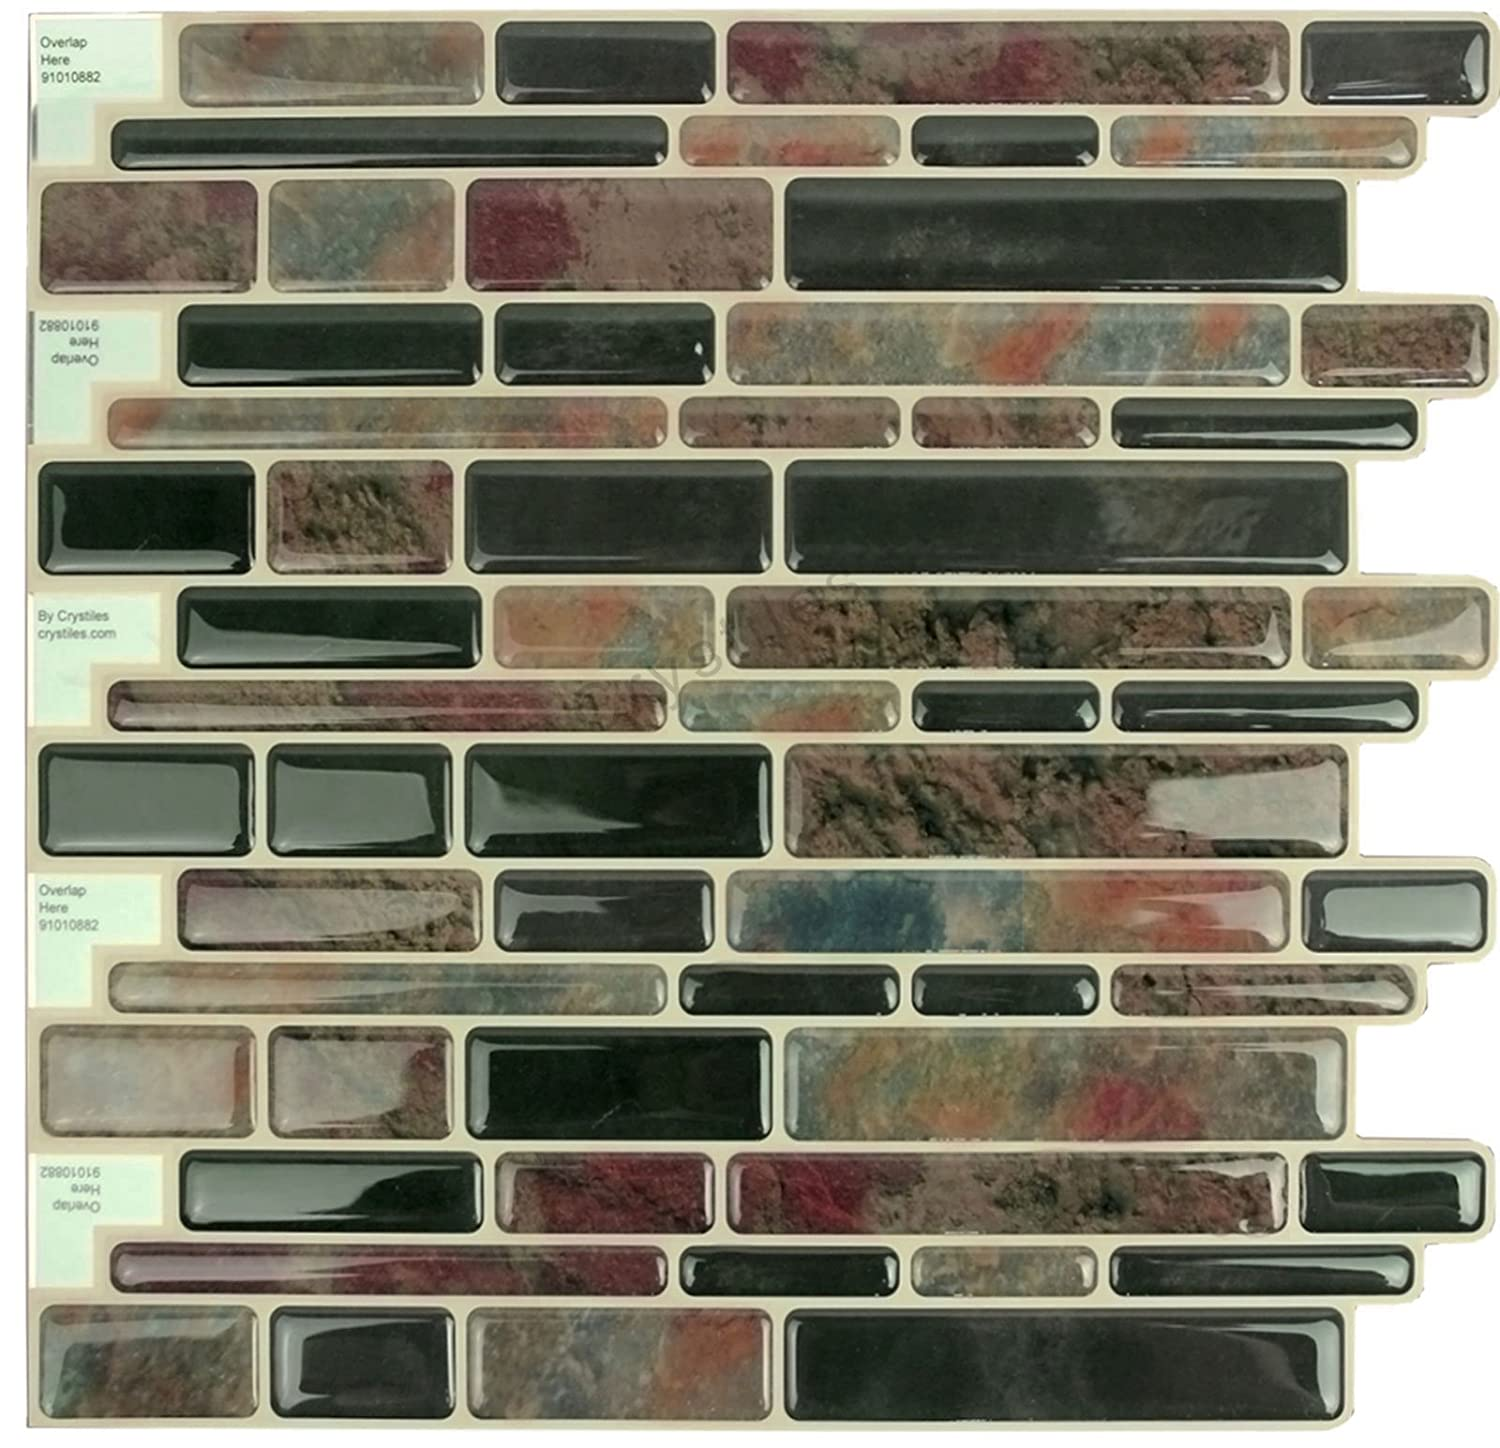 """Crystiles Peel and Stick Self-Adhesive Vinyl Wall Tiles, Multi-Color Marbles Style, Item# 91010882, 10"""" X 10"""", 1 Sheet Sample 10"""" X 10"""" 91010882S"""